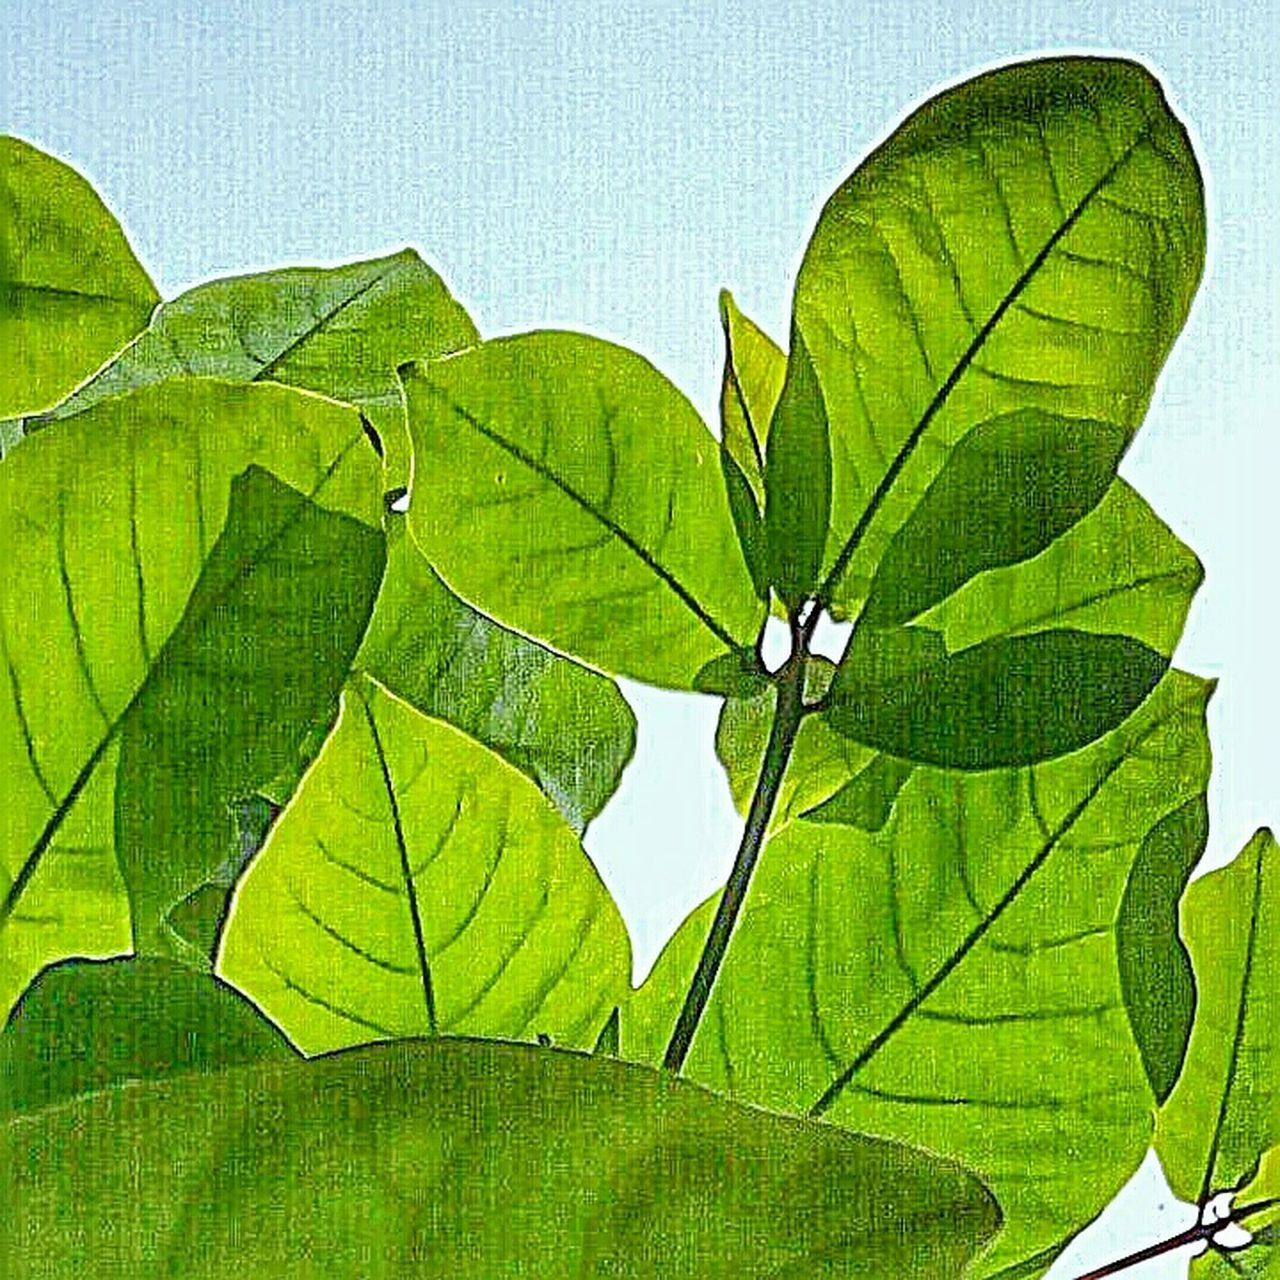 Leaf Leaf Vein Green Color Sky Nature Plant Life Green Green Green!  Botany Green Leaves Mobile Photography IMography Mobile_photographer EyeEm Nature Lover EyeEm Gallery Leafy Greens Leaves🌿 Picoftheday Leafs Photography Feel The Moment Be Happy And Enjoy The Little Things Love Without Boundaries Njoy_ur_evening To My Friends That Connect With Love From India💚 truly...urs... Nitin